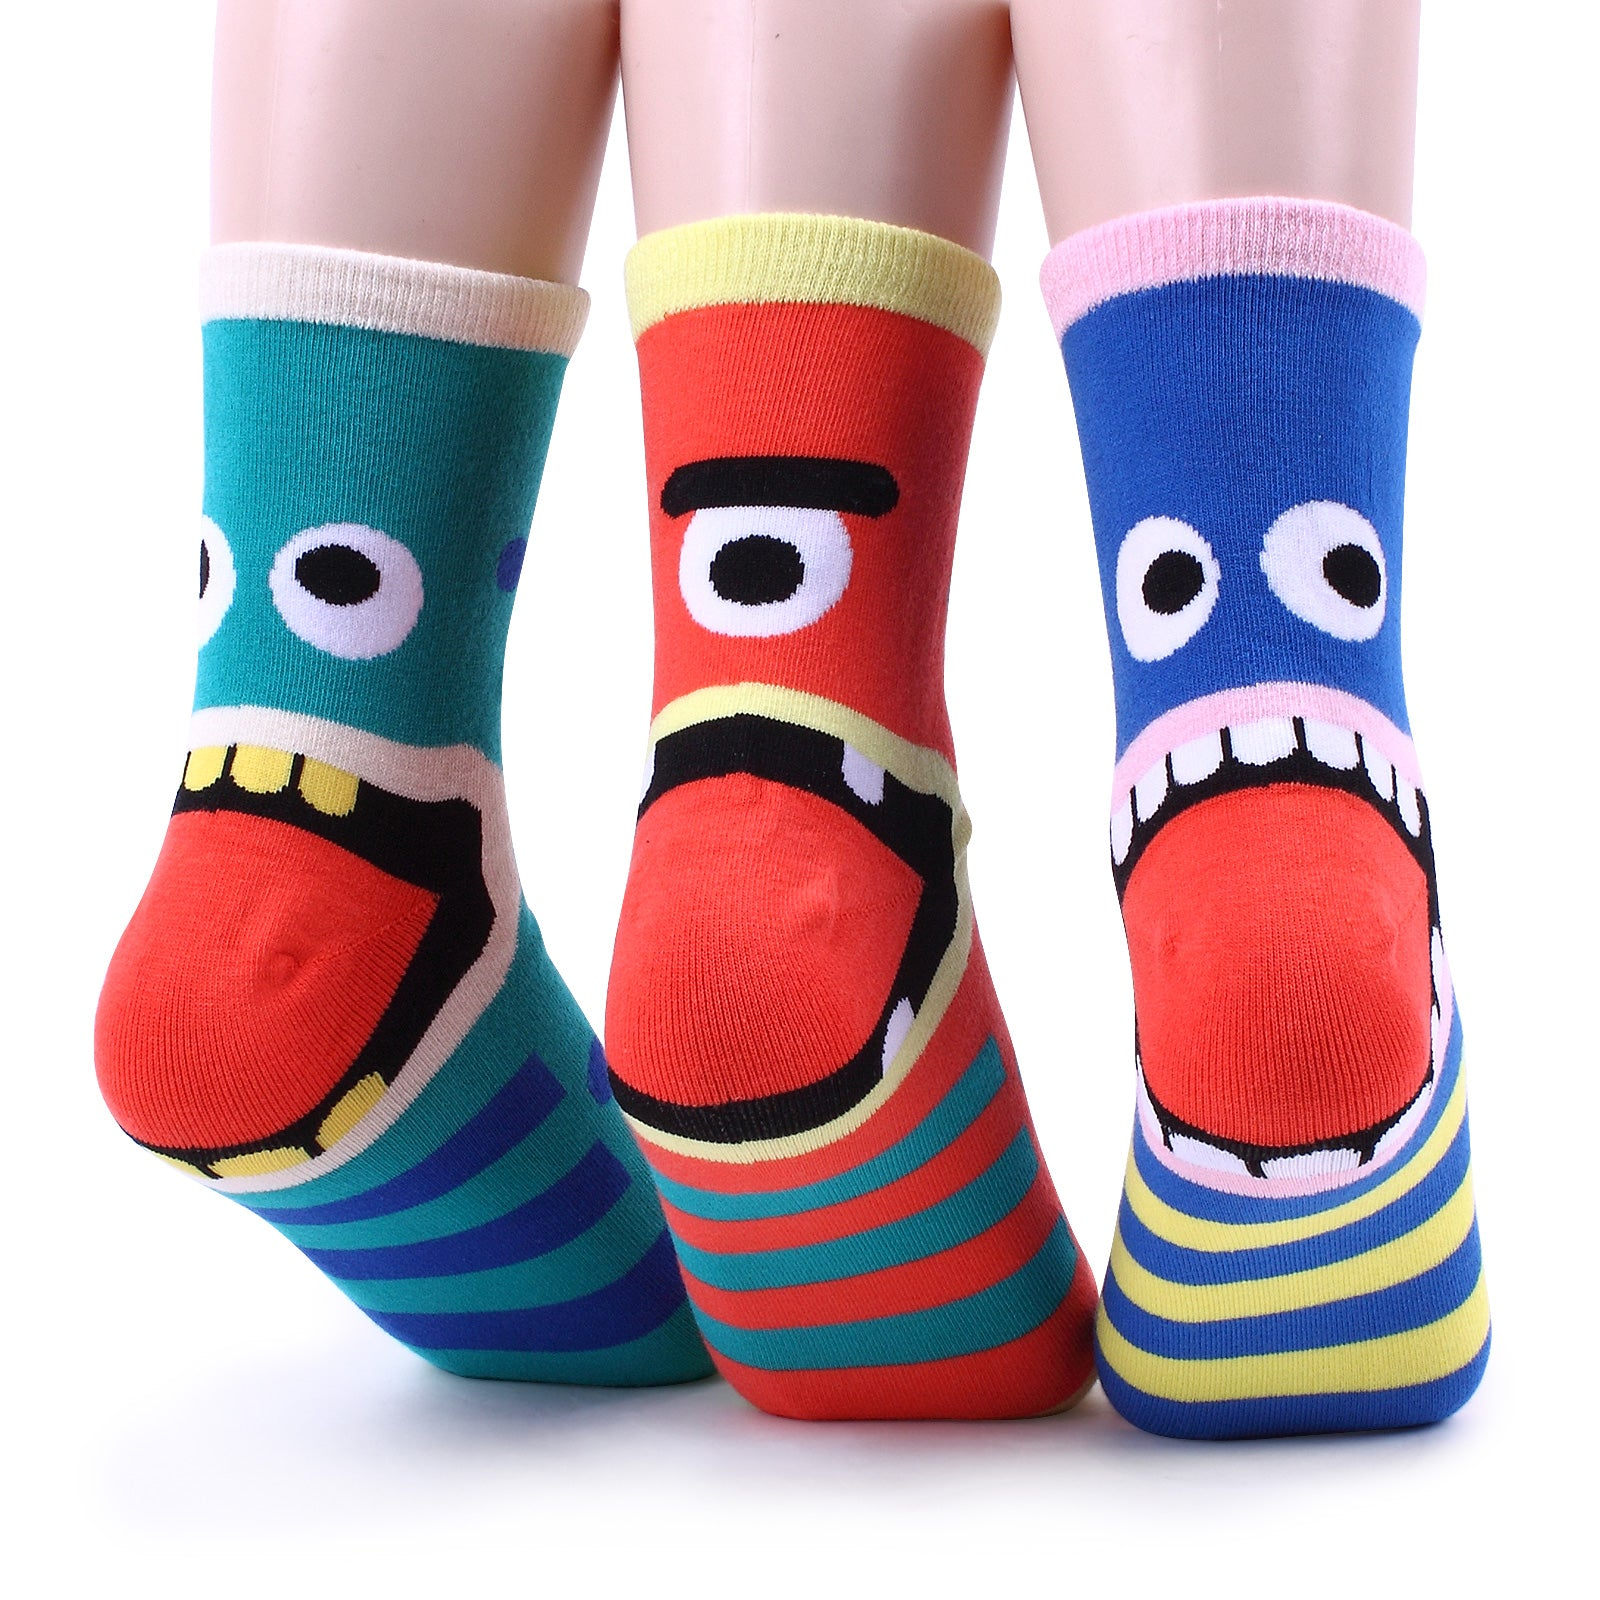 Women's fashion casual funny crazy socks collection (monster tongues 4pairs) CD14 - intypesocks